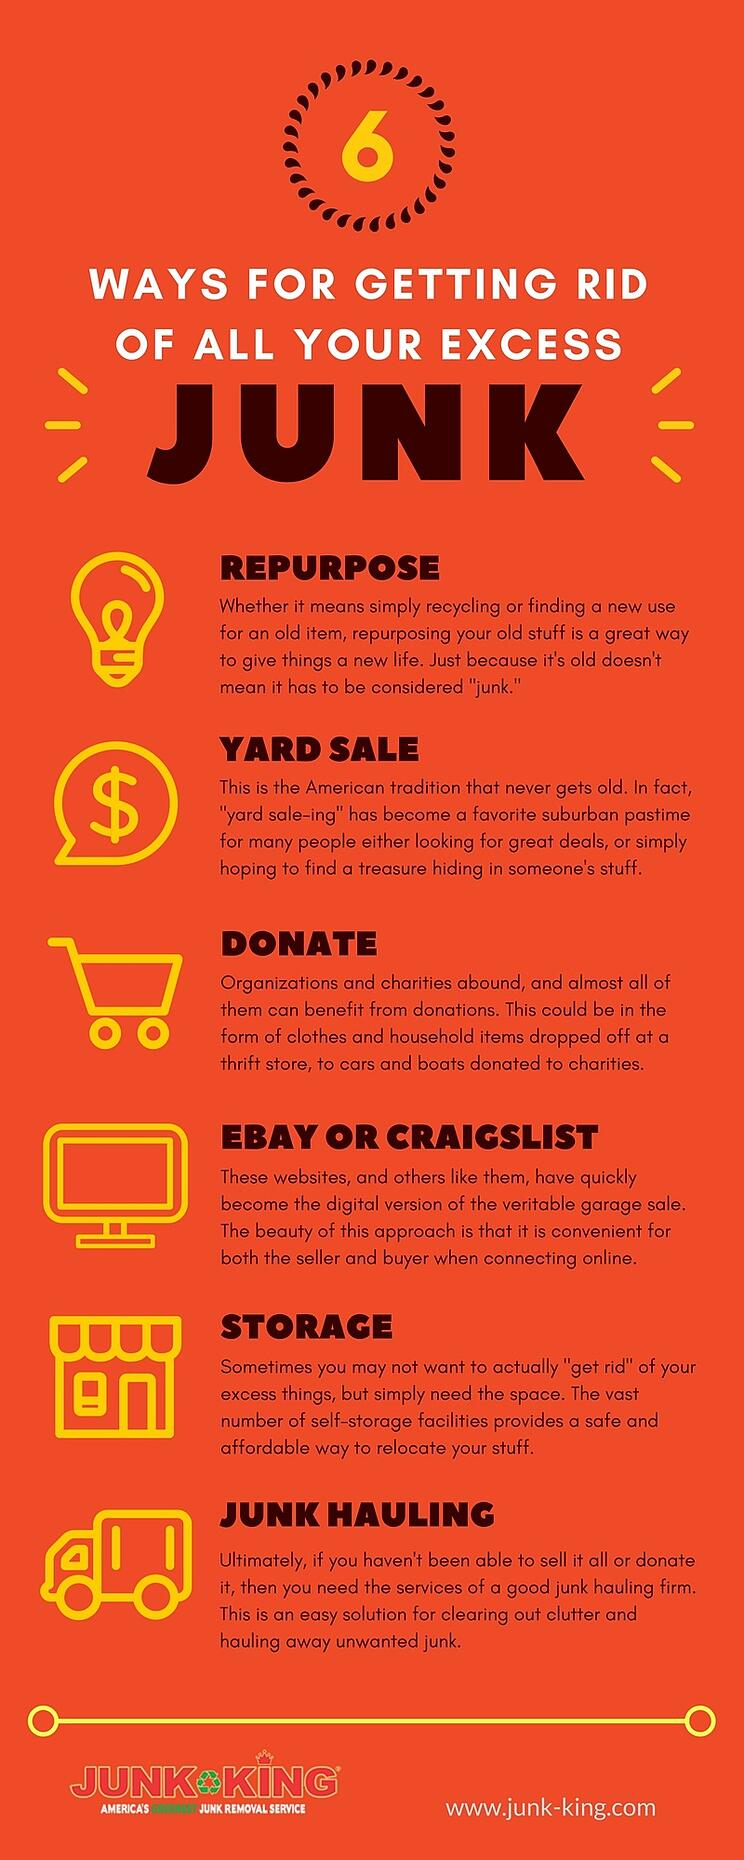 6 ways to get rid of junk.jpg